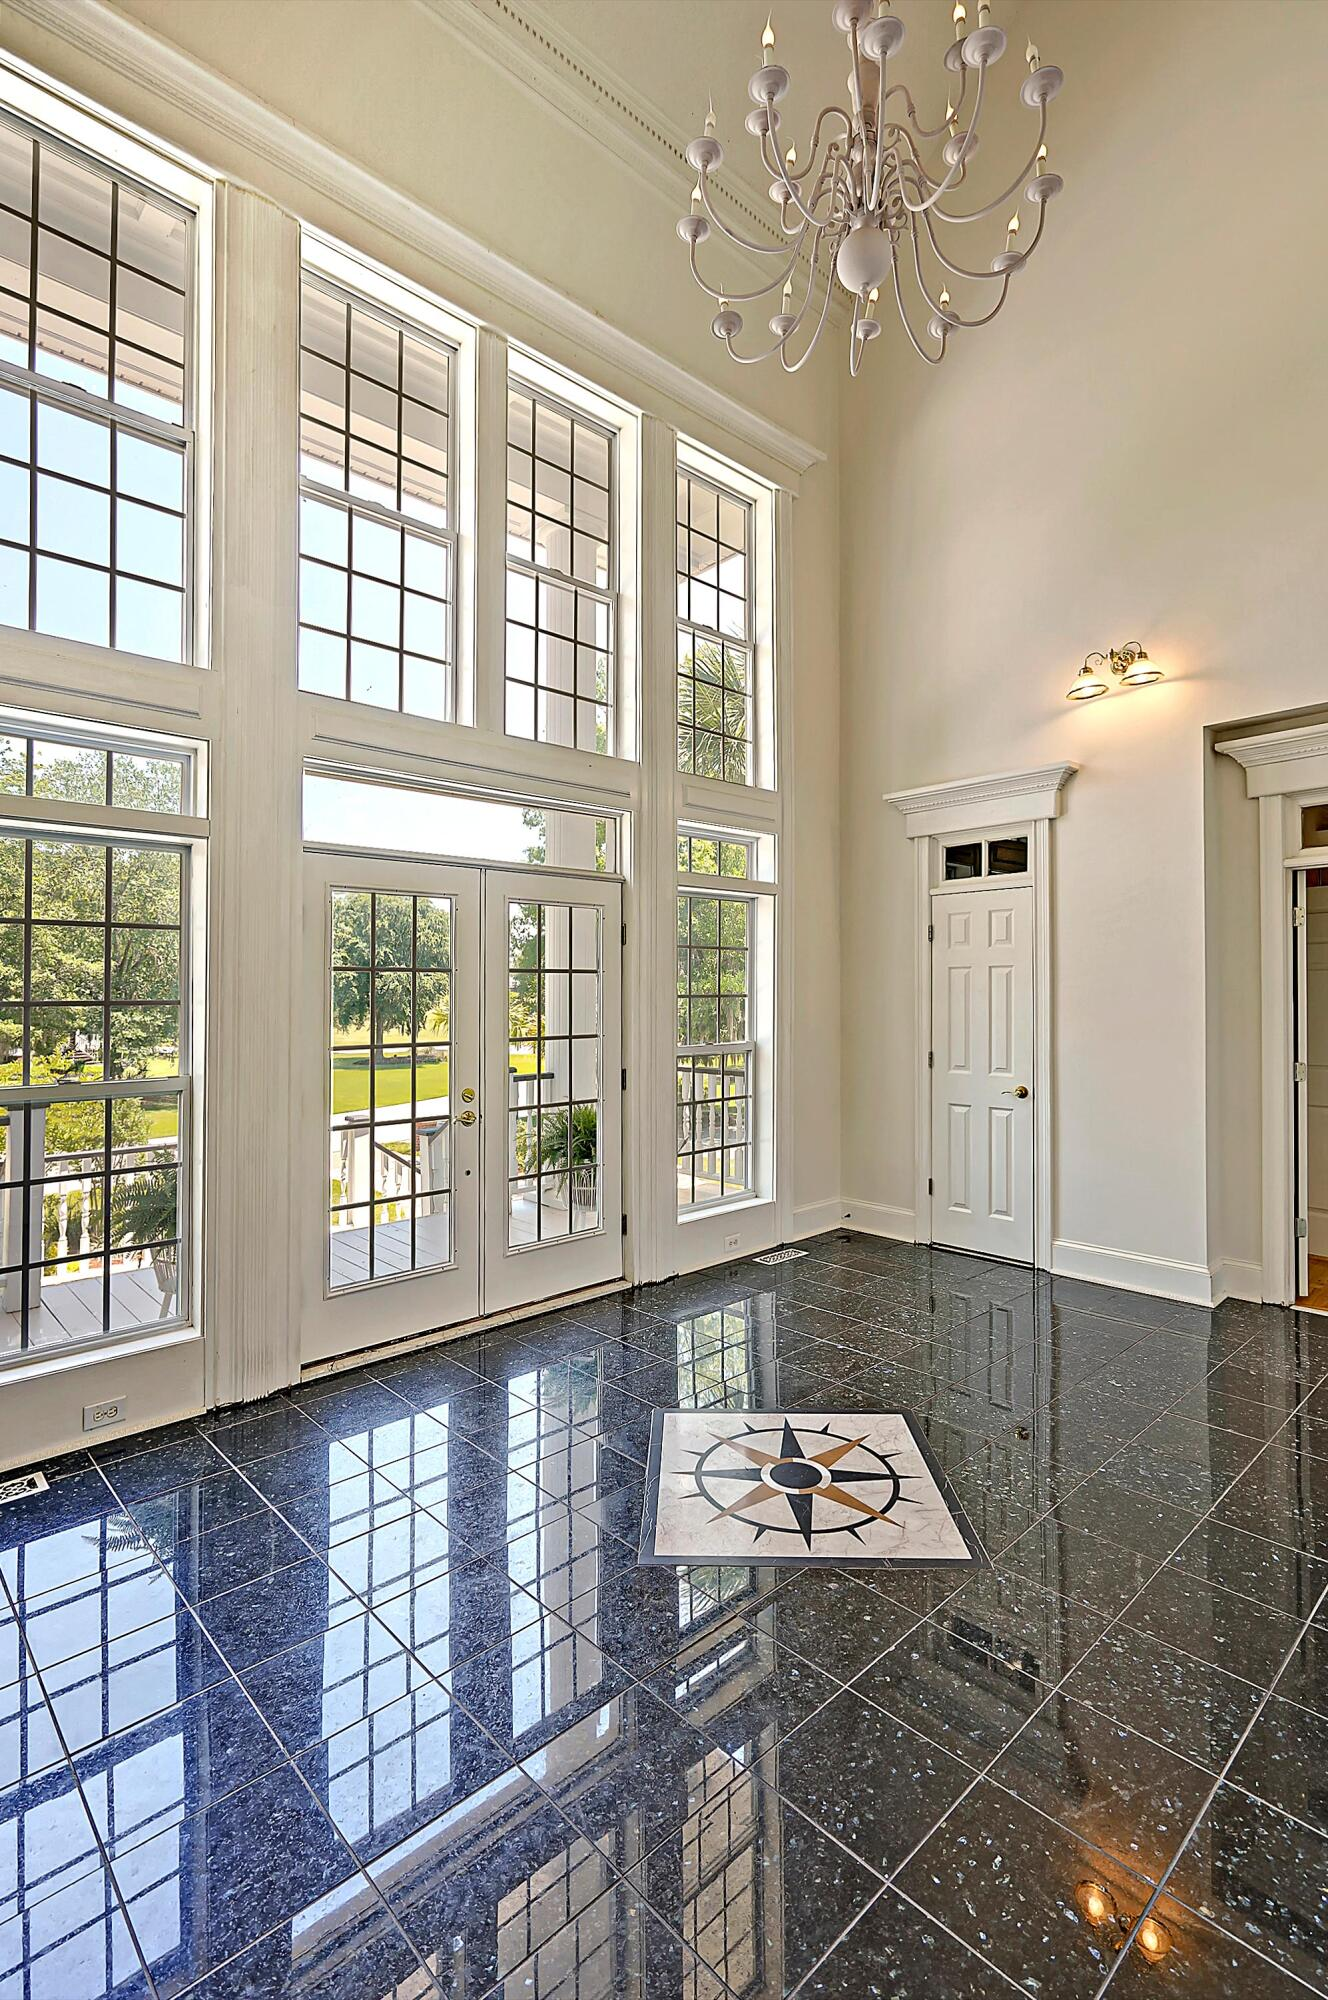 Coosaw Creek Country Club Homes For Sale - 4205 Sawgrass Drive, Charleston, SC - 35